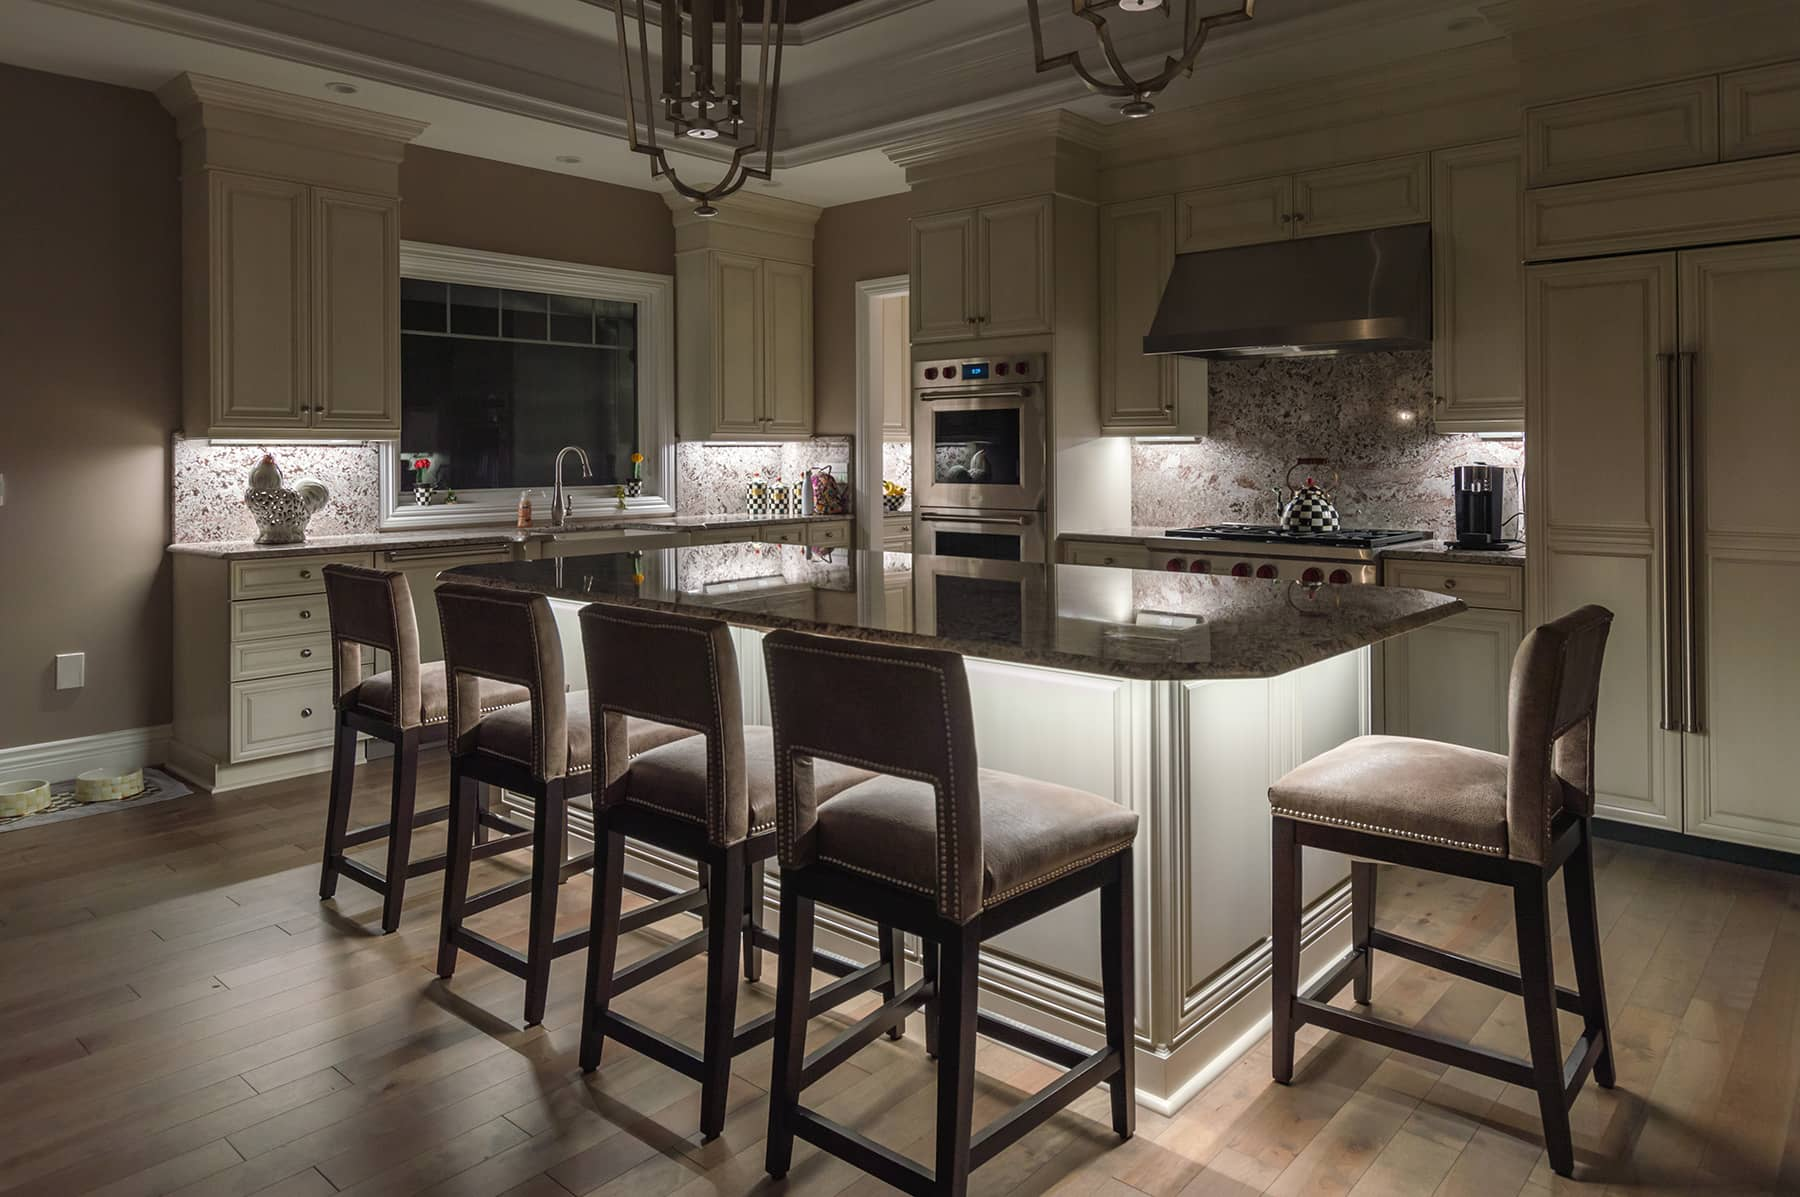 An upscale kitchen with professional lighting